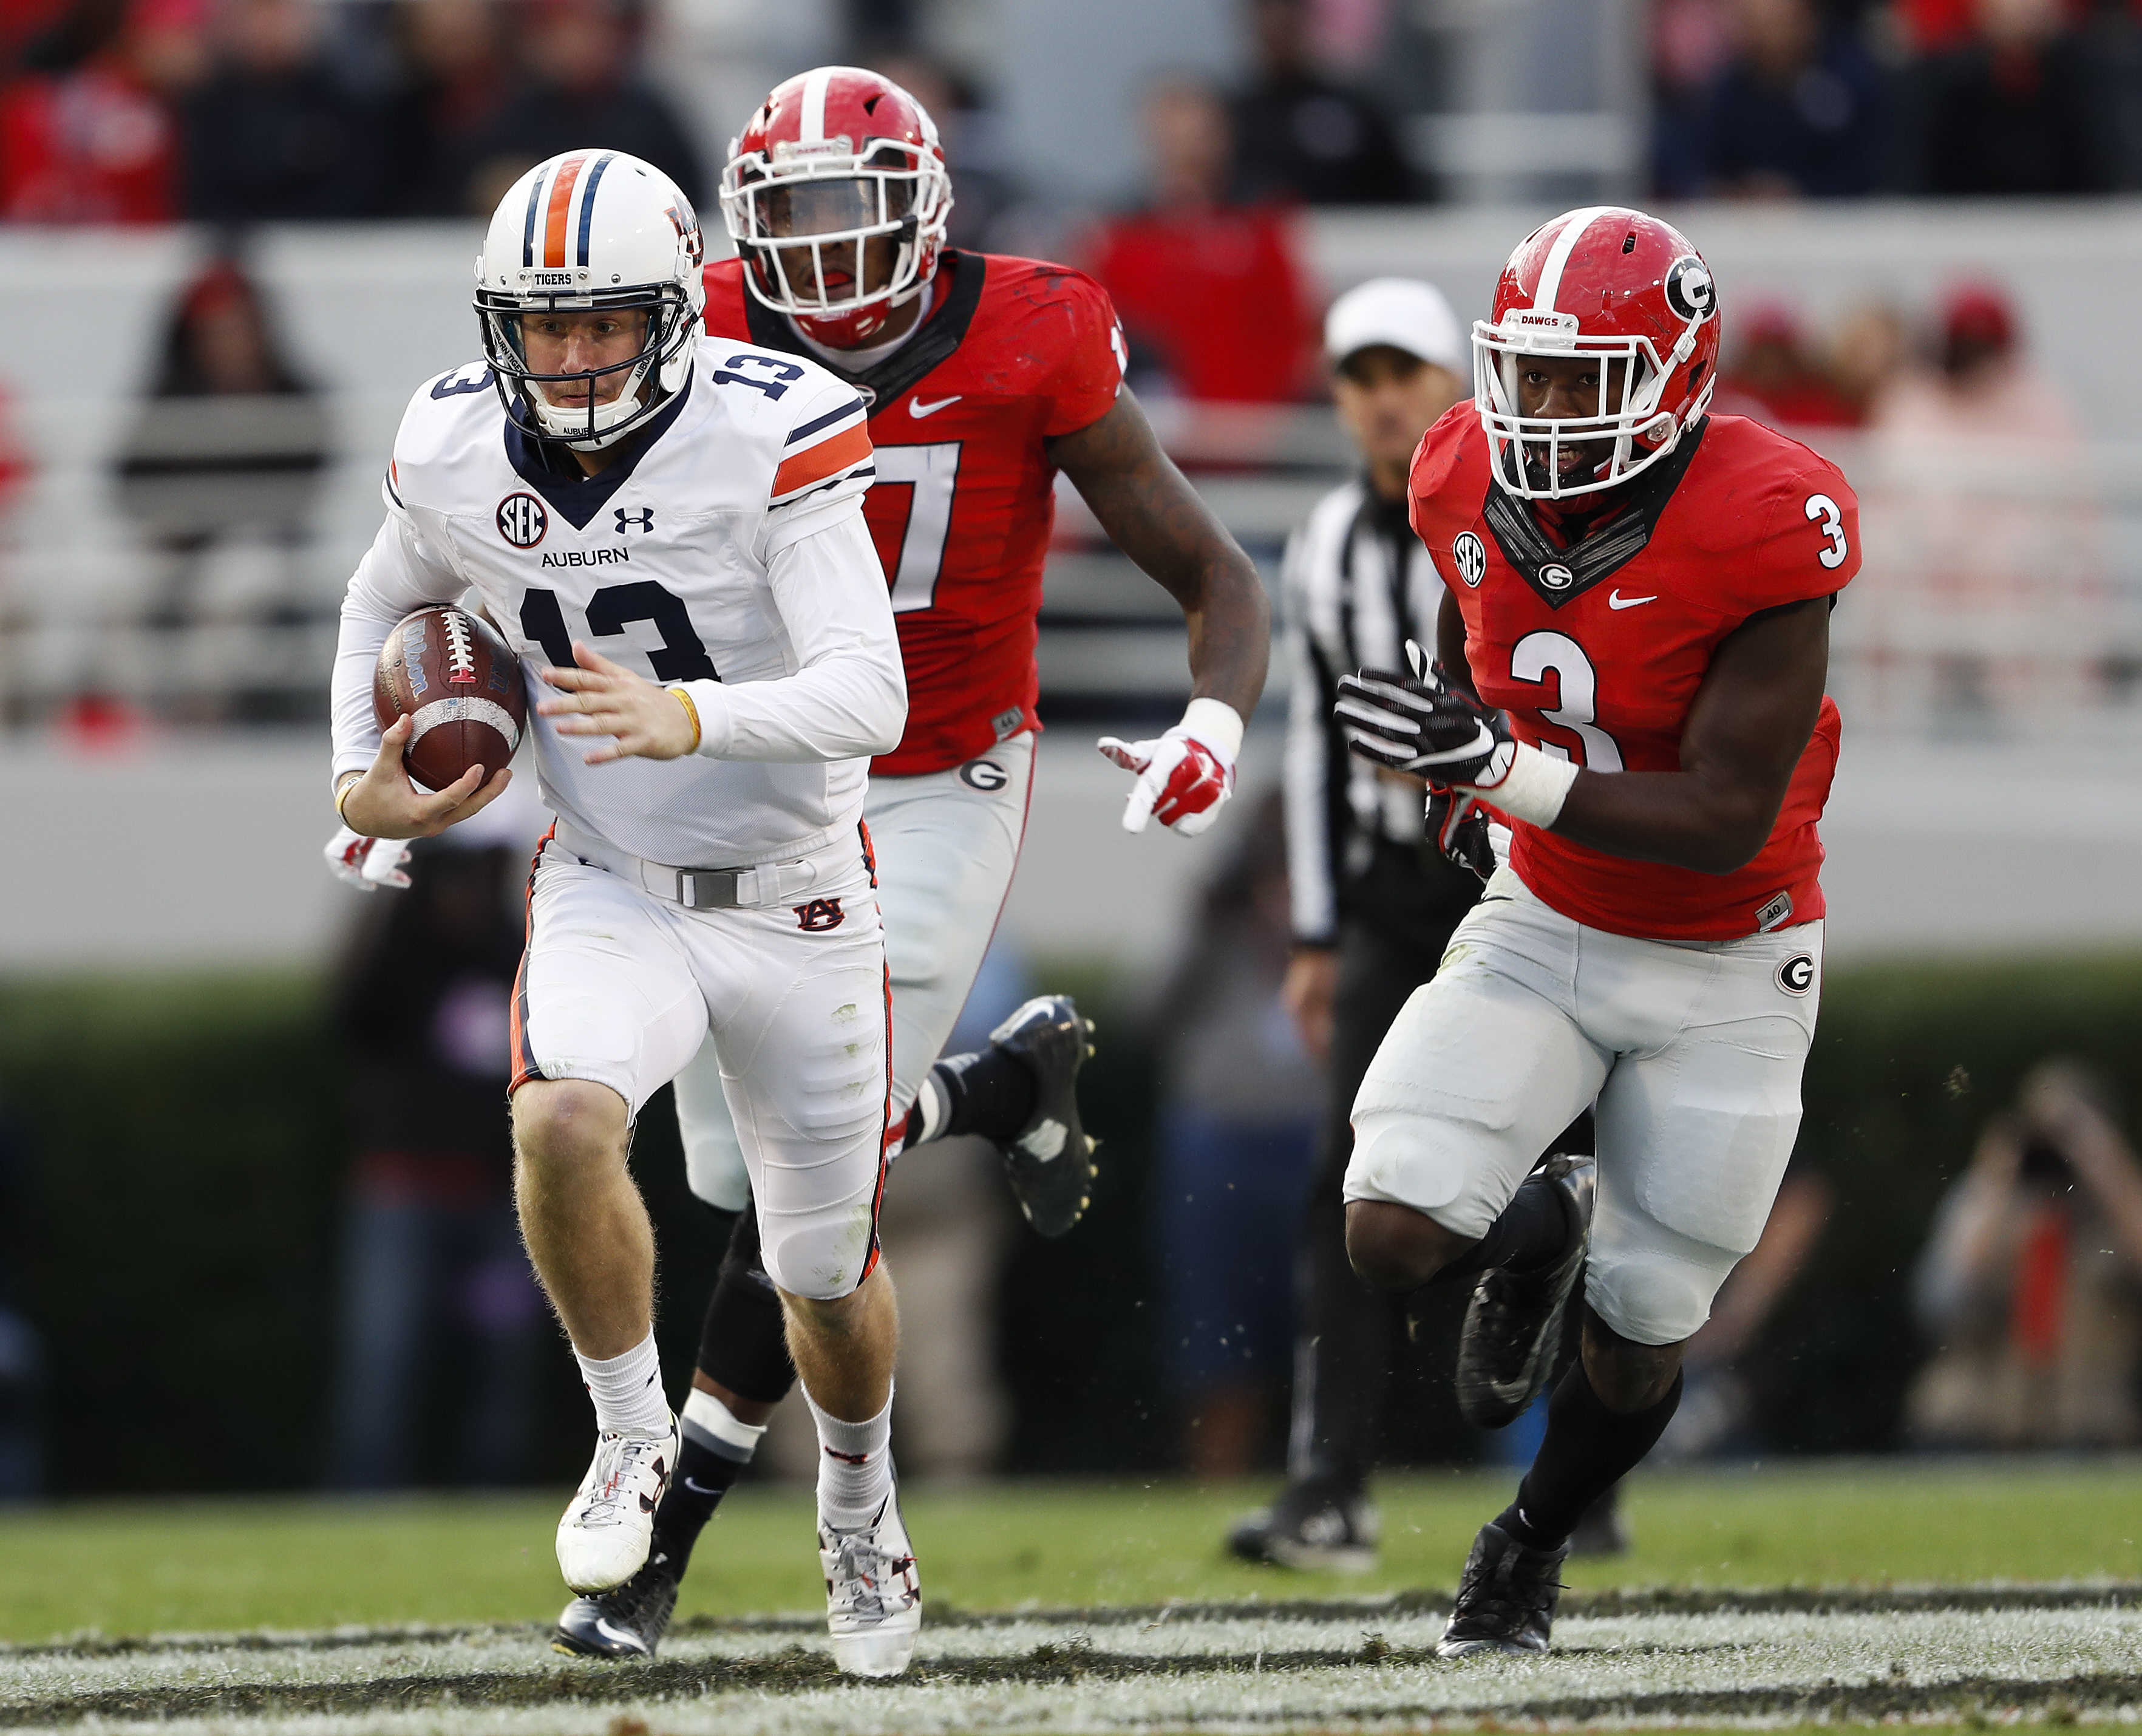 Auburn quarterback Sean White (13) breaks away fro Georgia linebackers Davin Bellamy (17) and Roquan Smith (3) in the first half of an NCAA college football game Saturday, Nov. 12, 2016, in Athens, Ga. (AP Photo/John Bazemore)